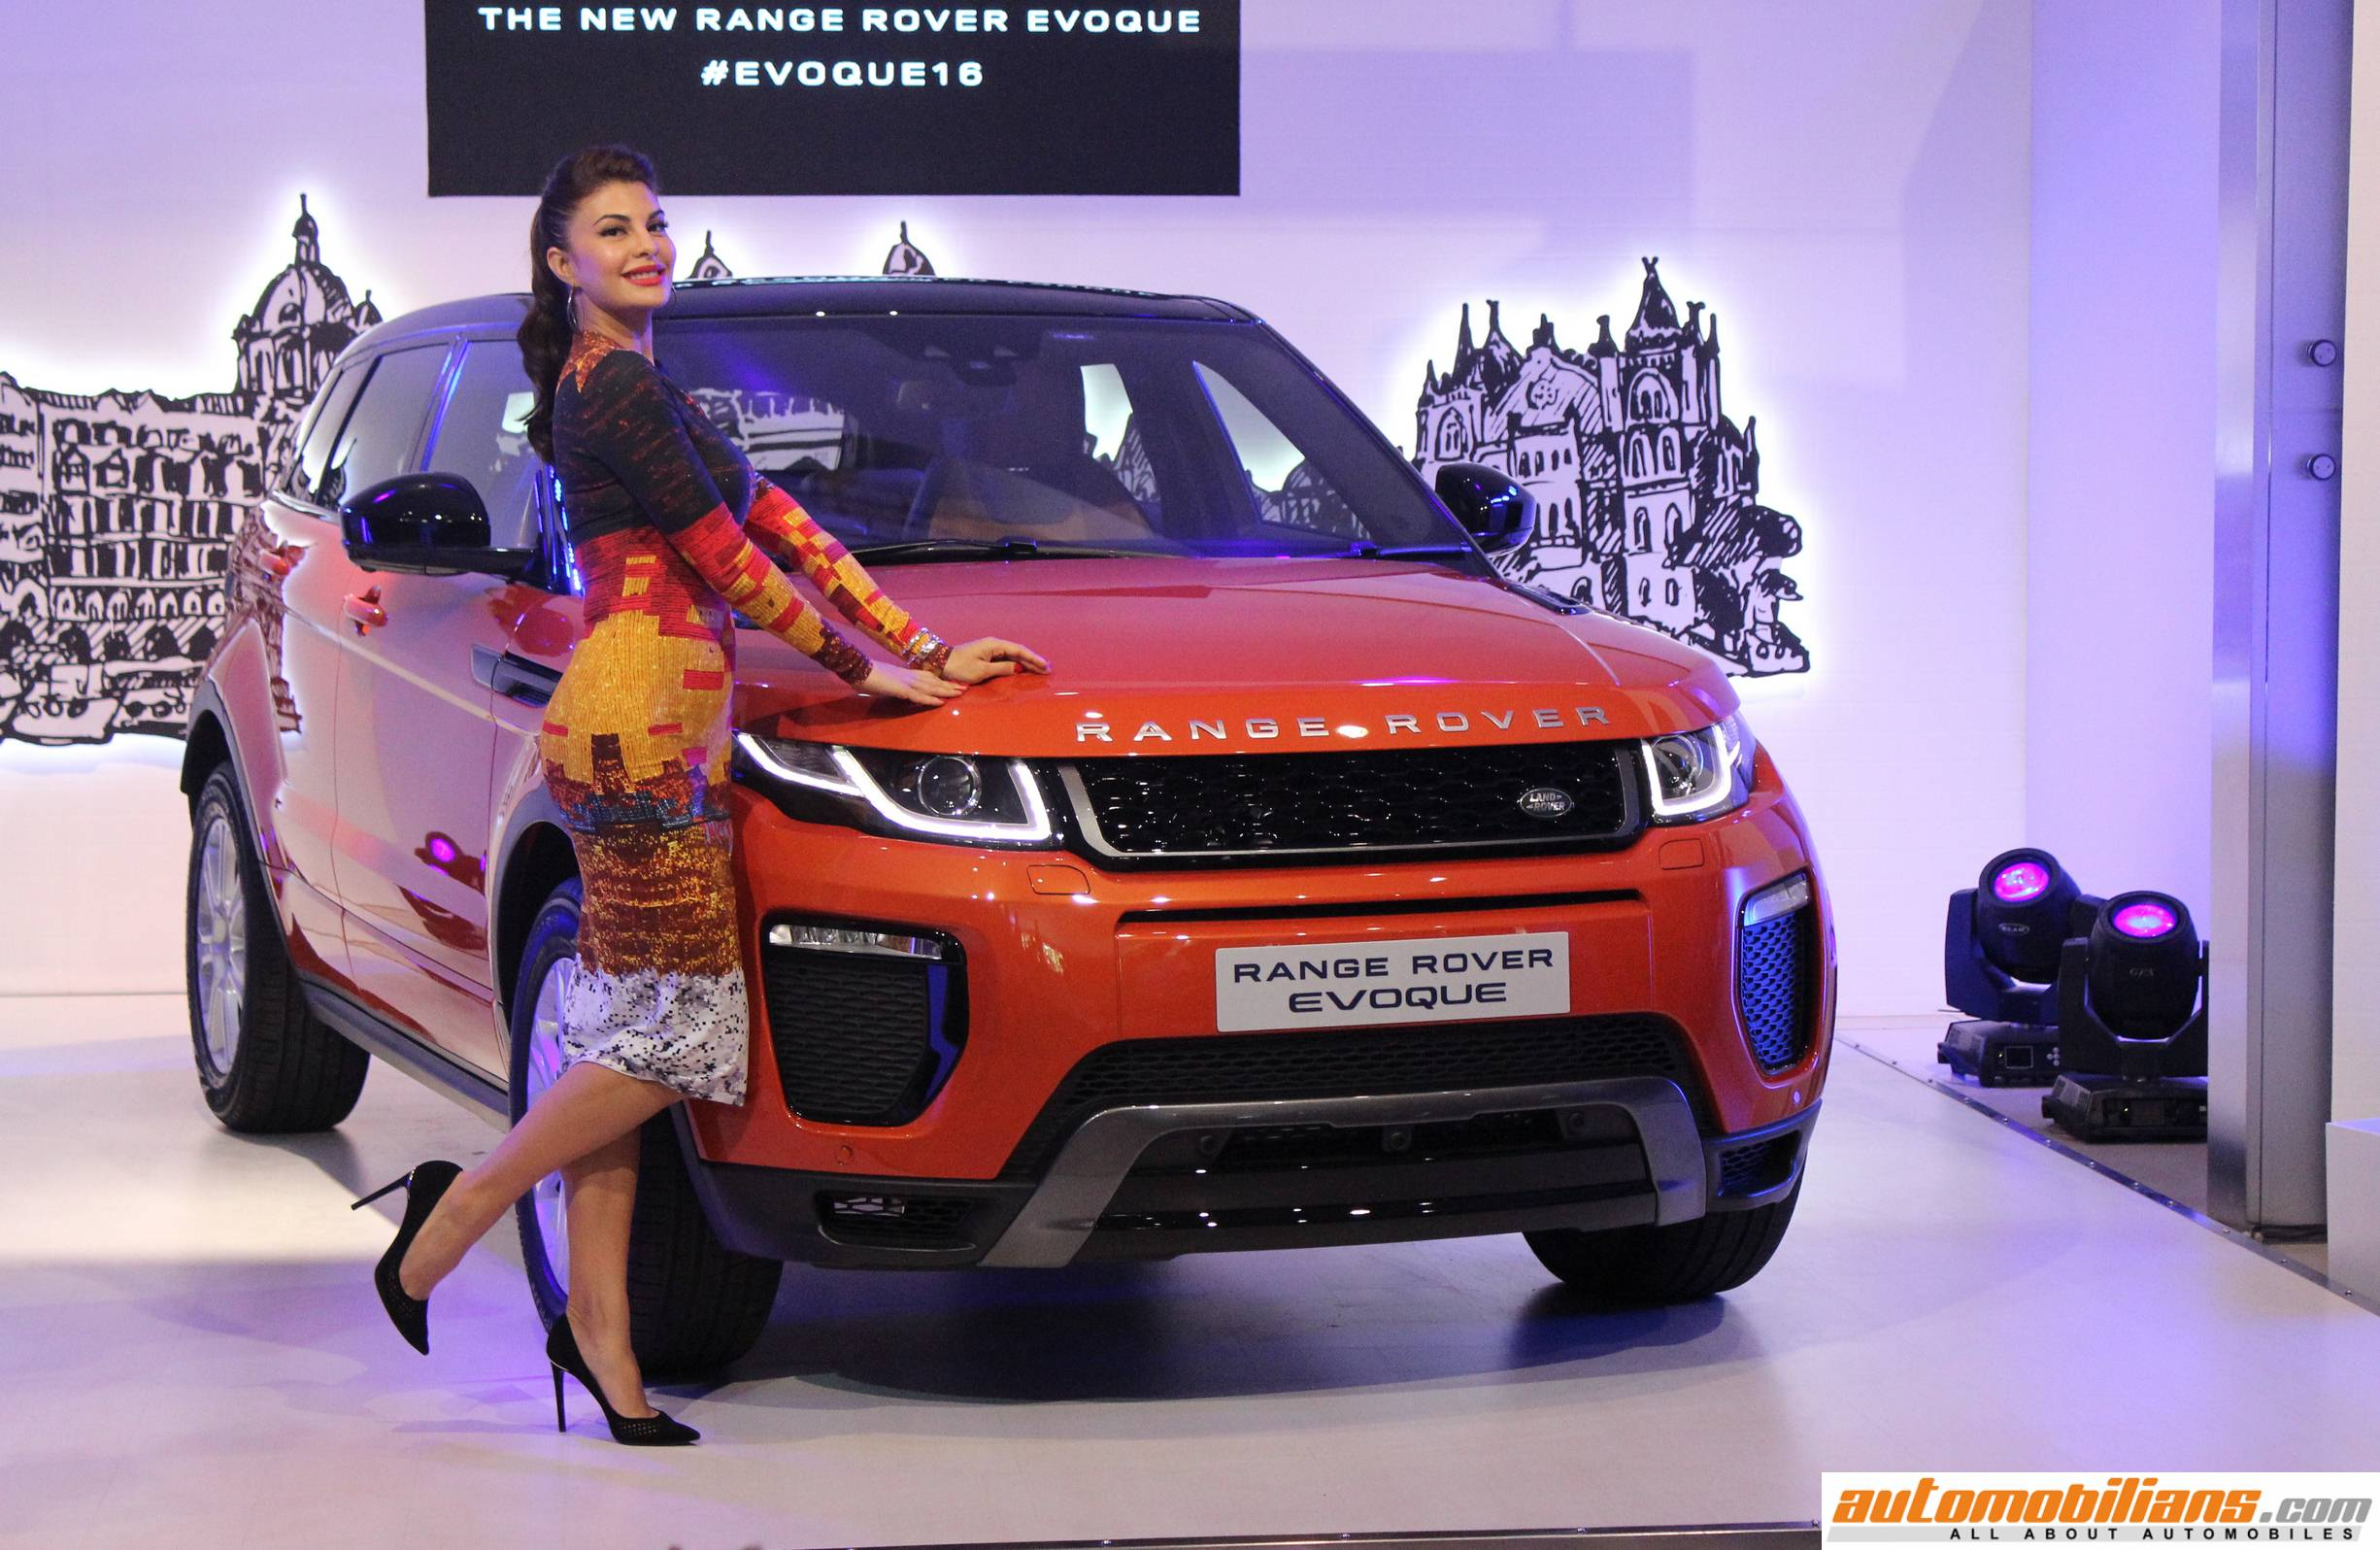 2016 Range Rover Evoque Launched In India At Rs 47 10 Lakhs Range